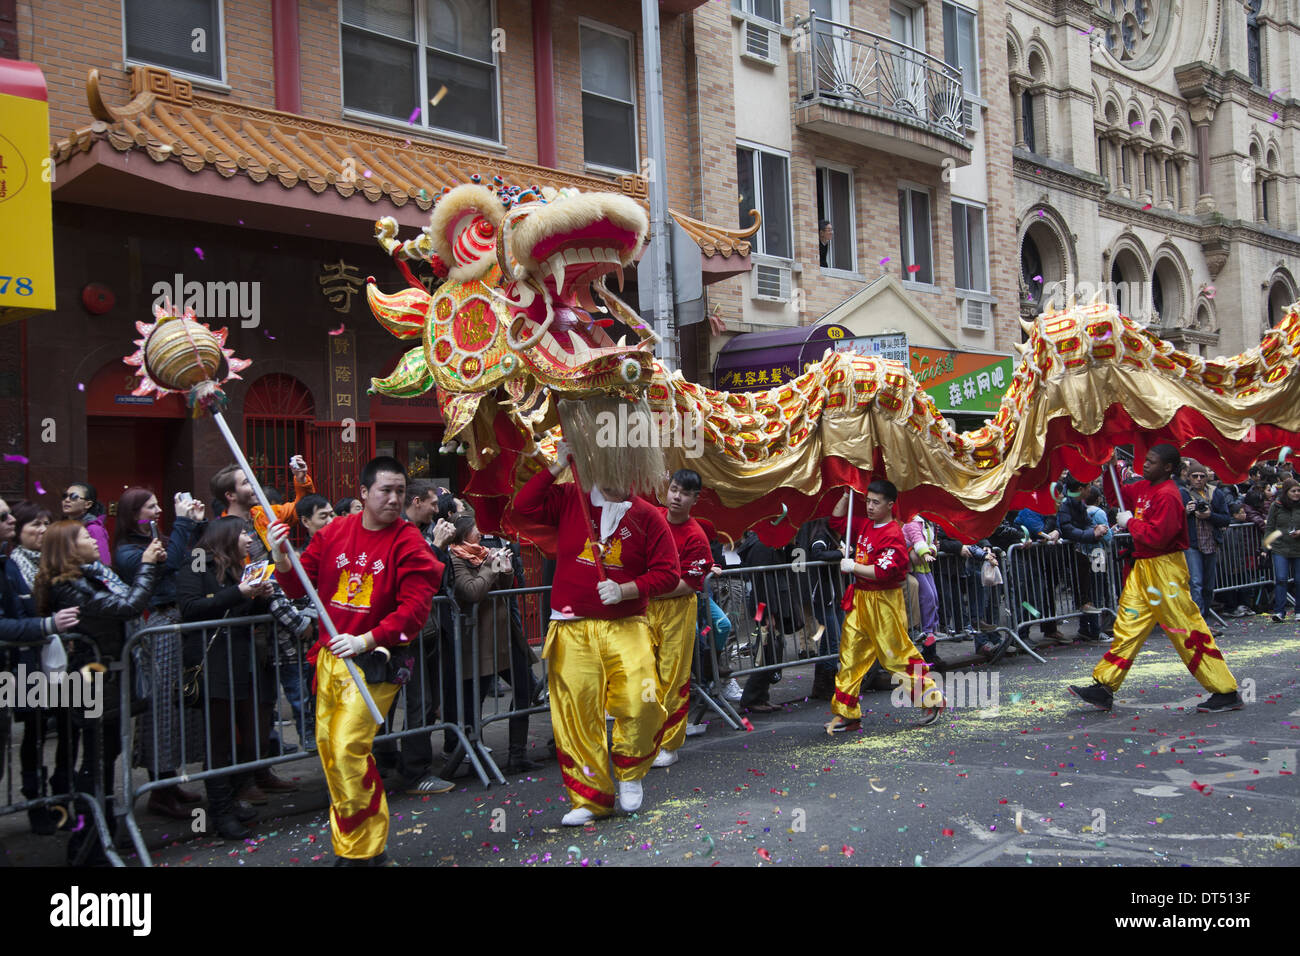 Dragon ballerini sono un highlight del nuovo anno cinese Parade di Chinatown, New York City. Immagini Stock